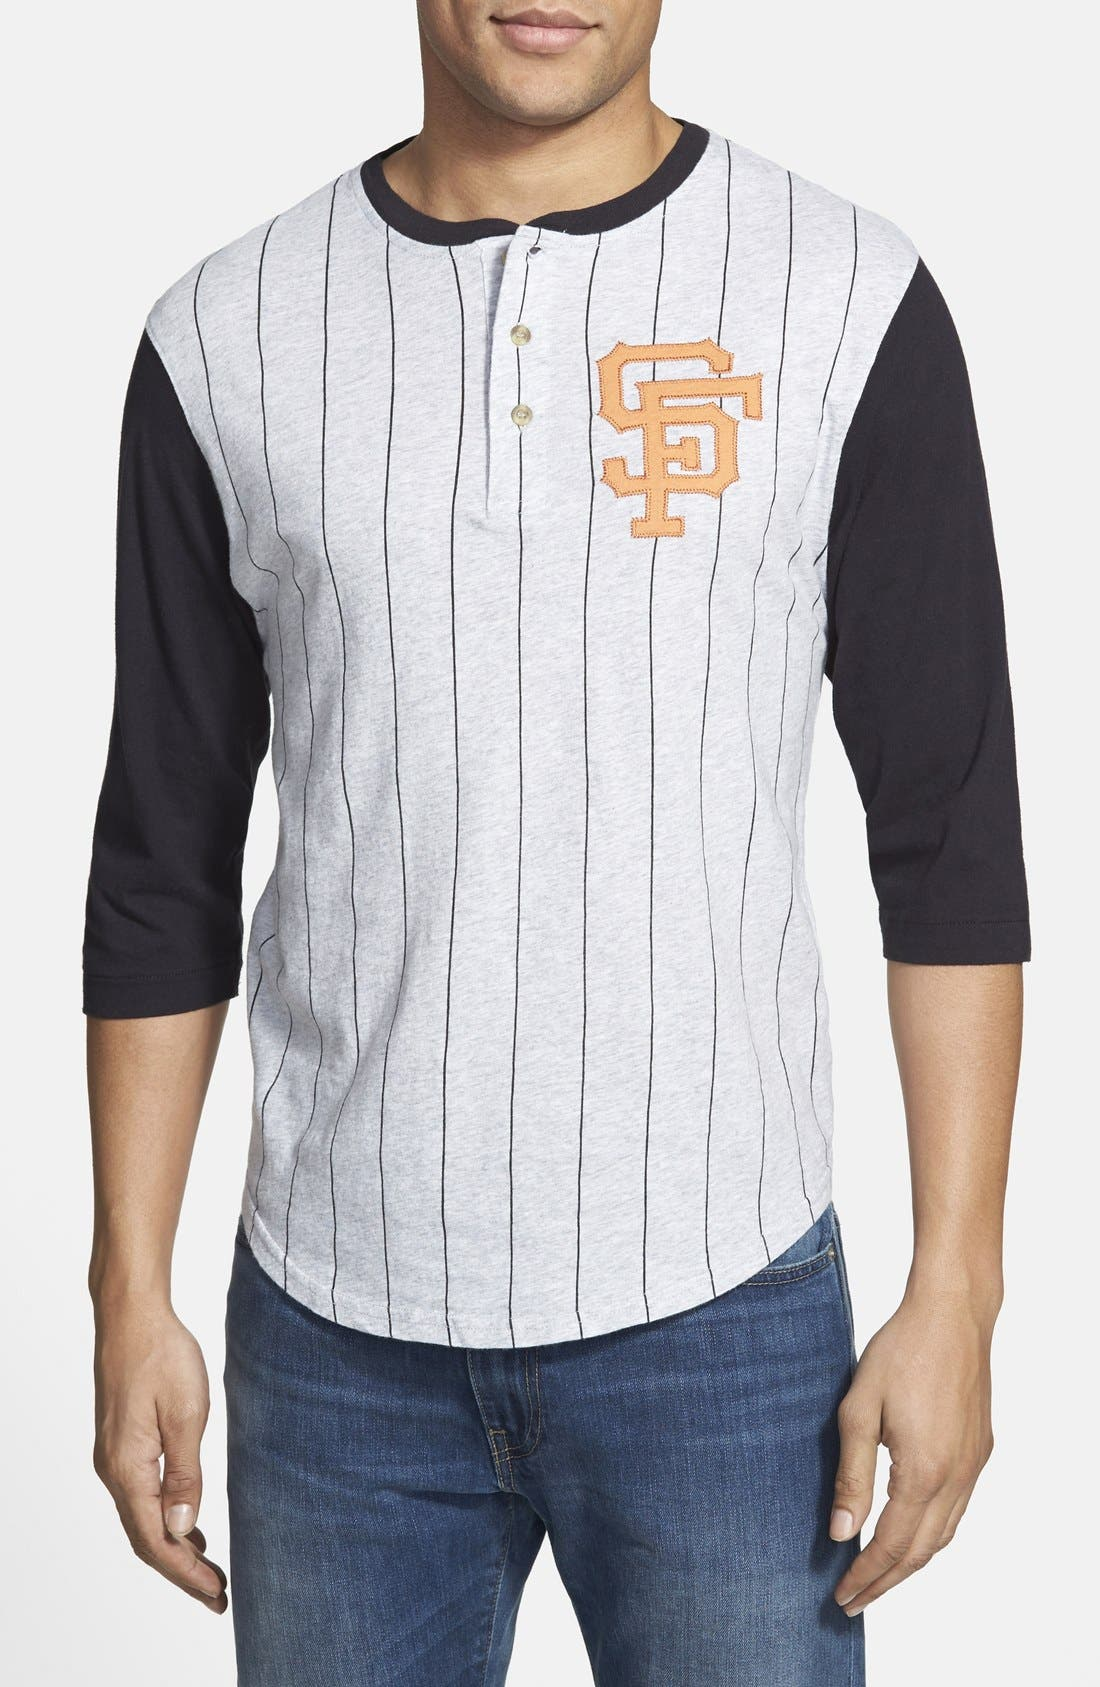 Alternate Image 1 Selected - Red Jacket 'San Francisco Giants - Double Play' Jersey Henley